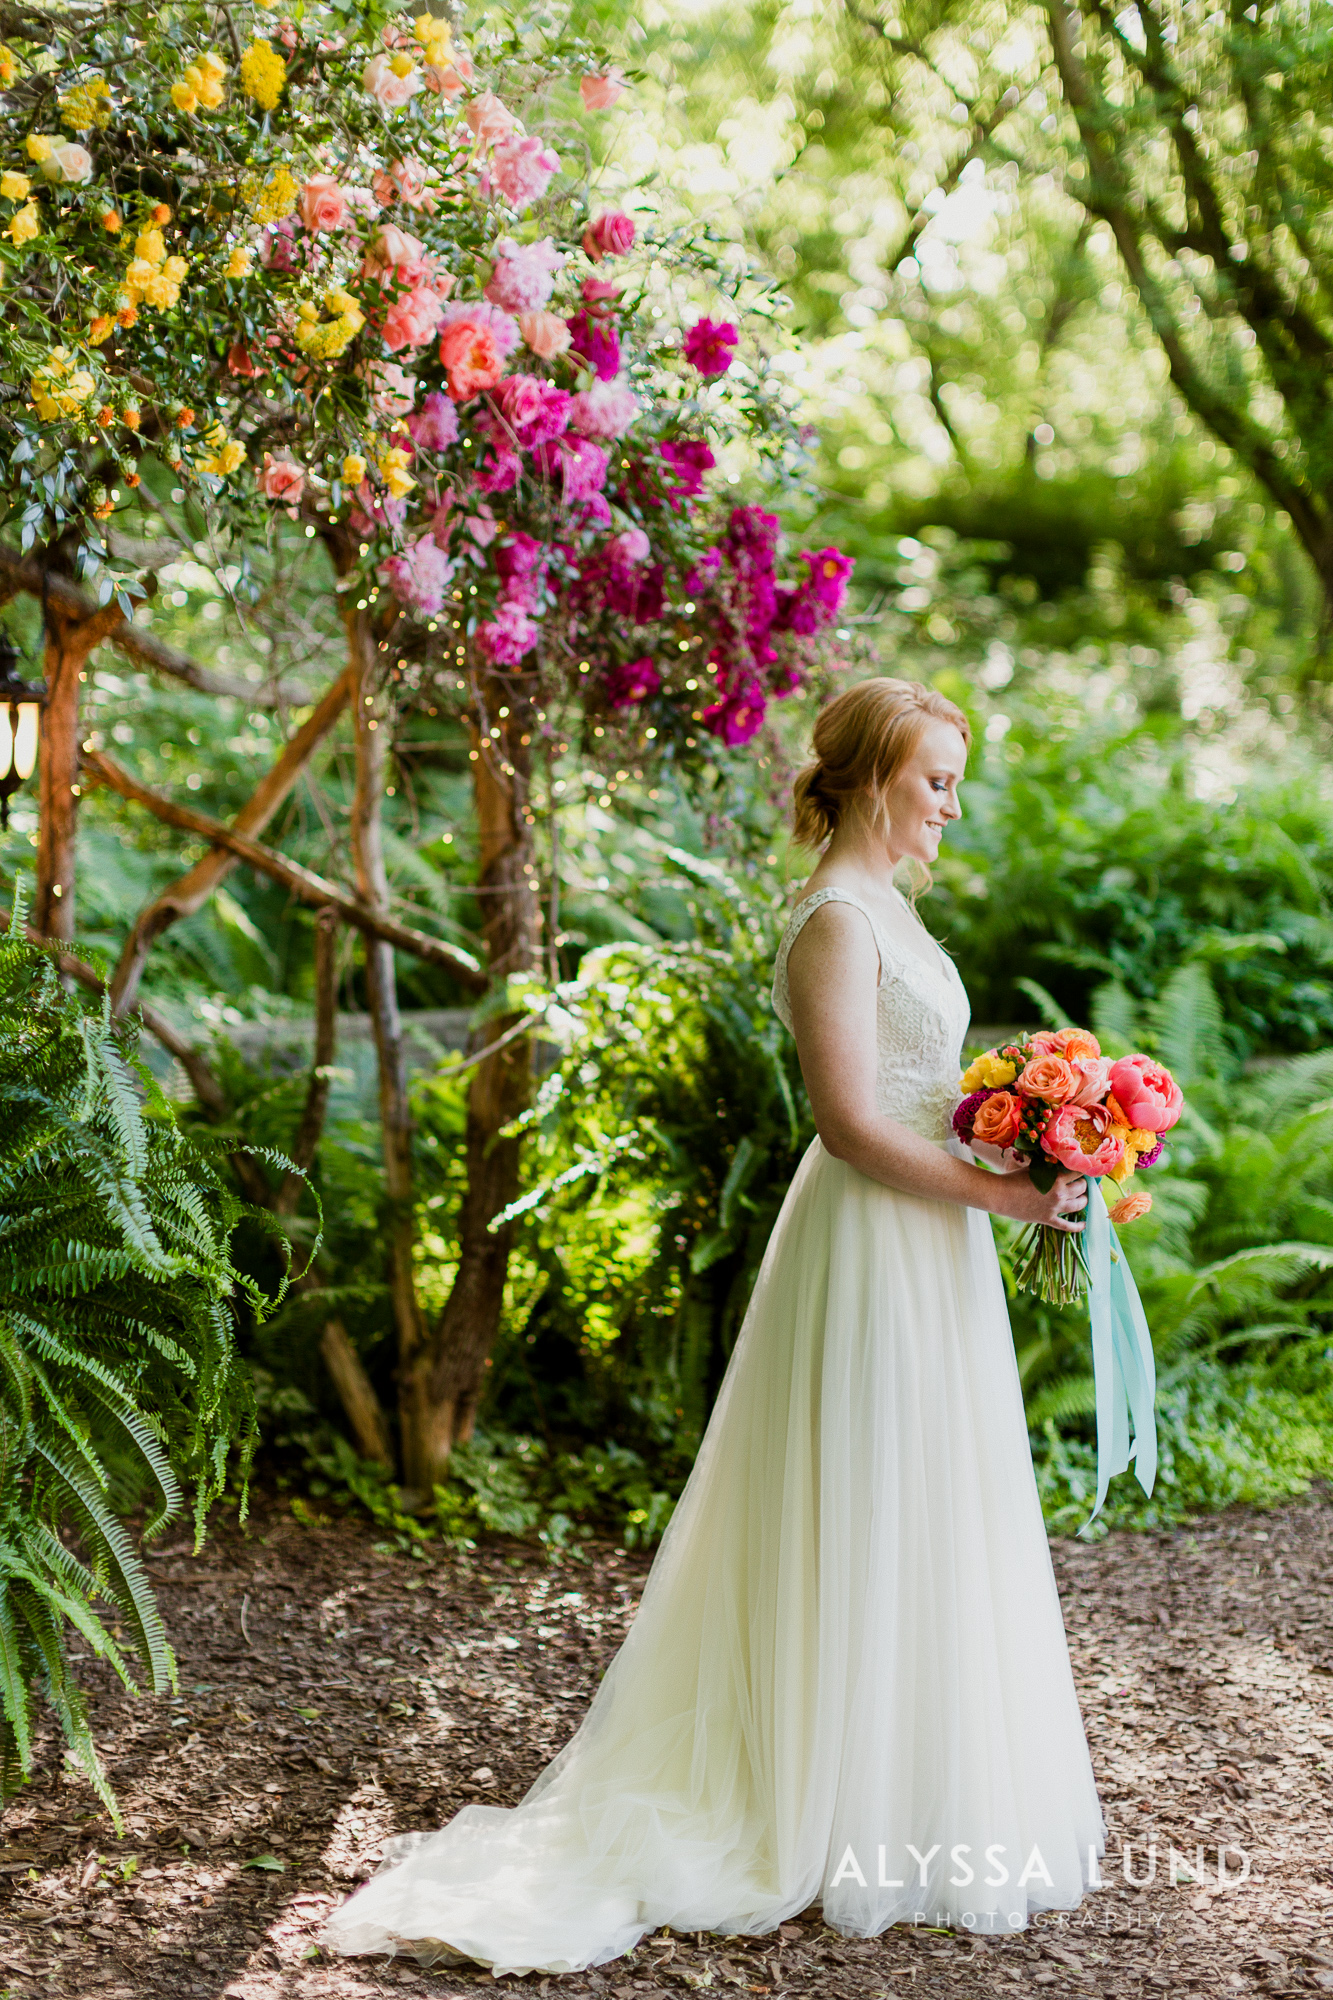 Queer wedding photography inspiration by Alyssa Lund Photography-24.jpg